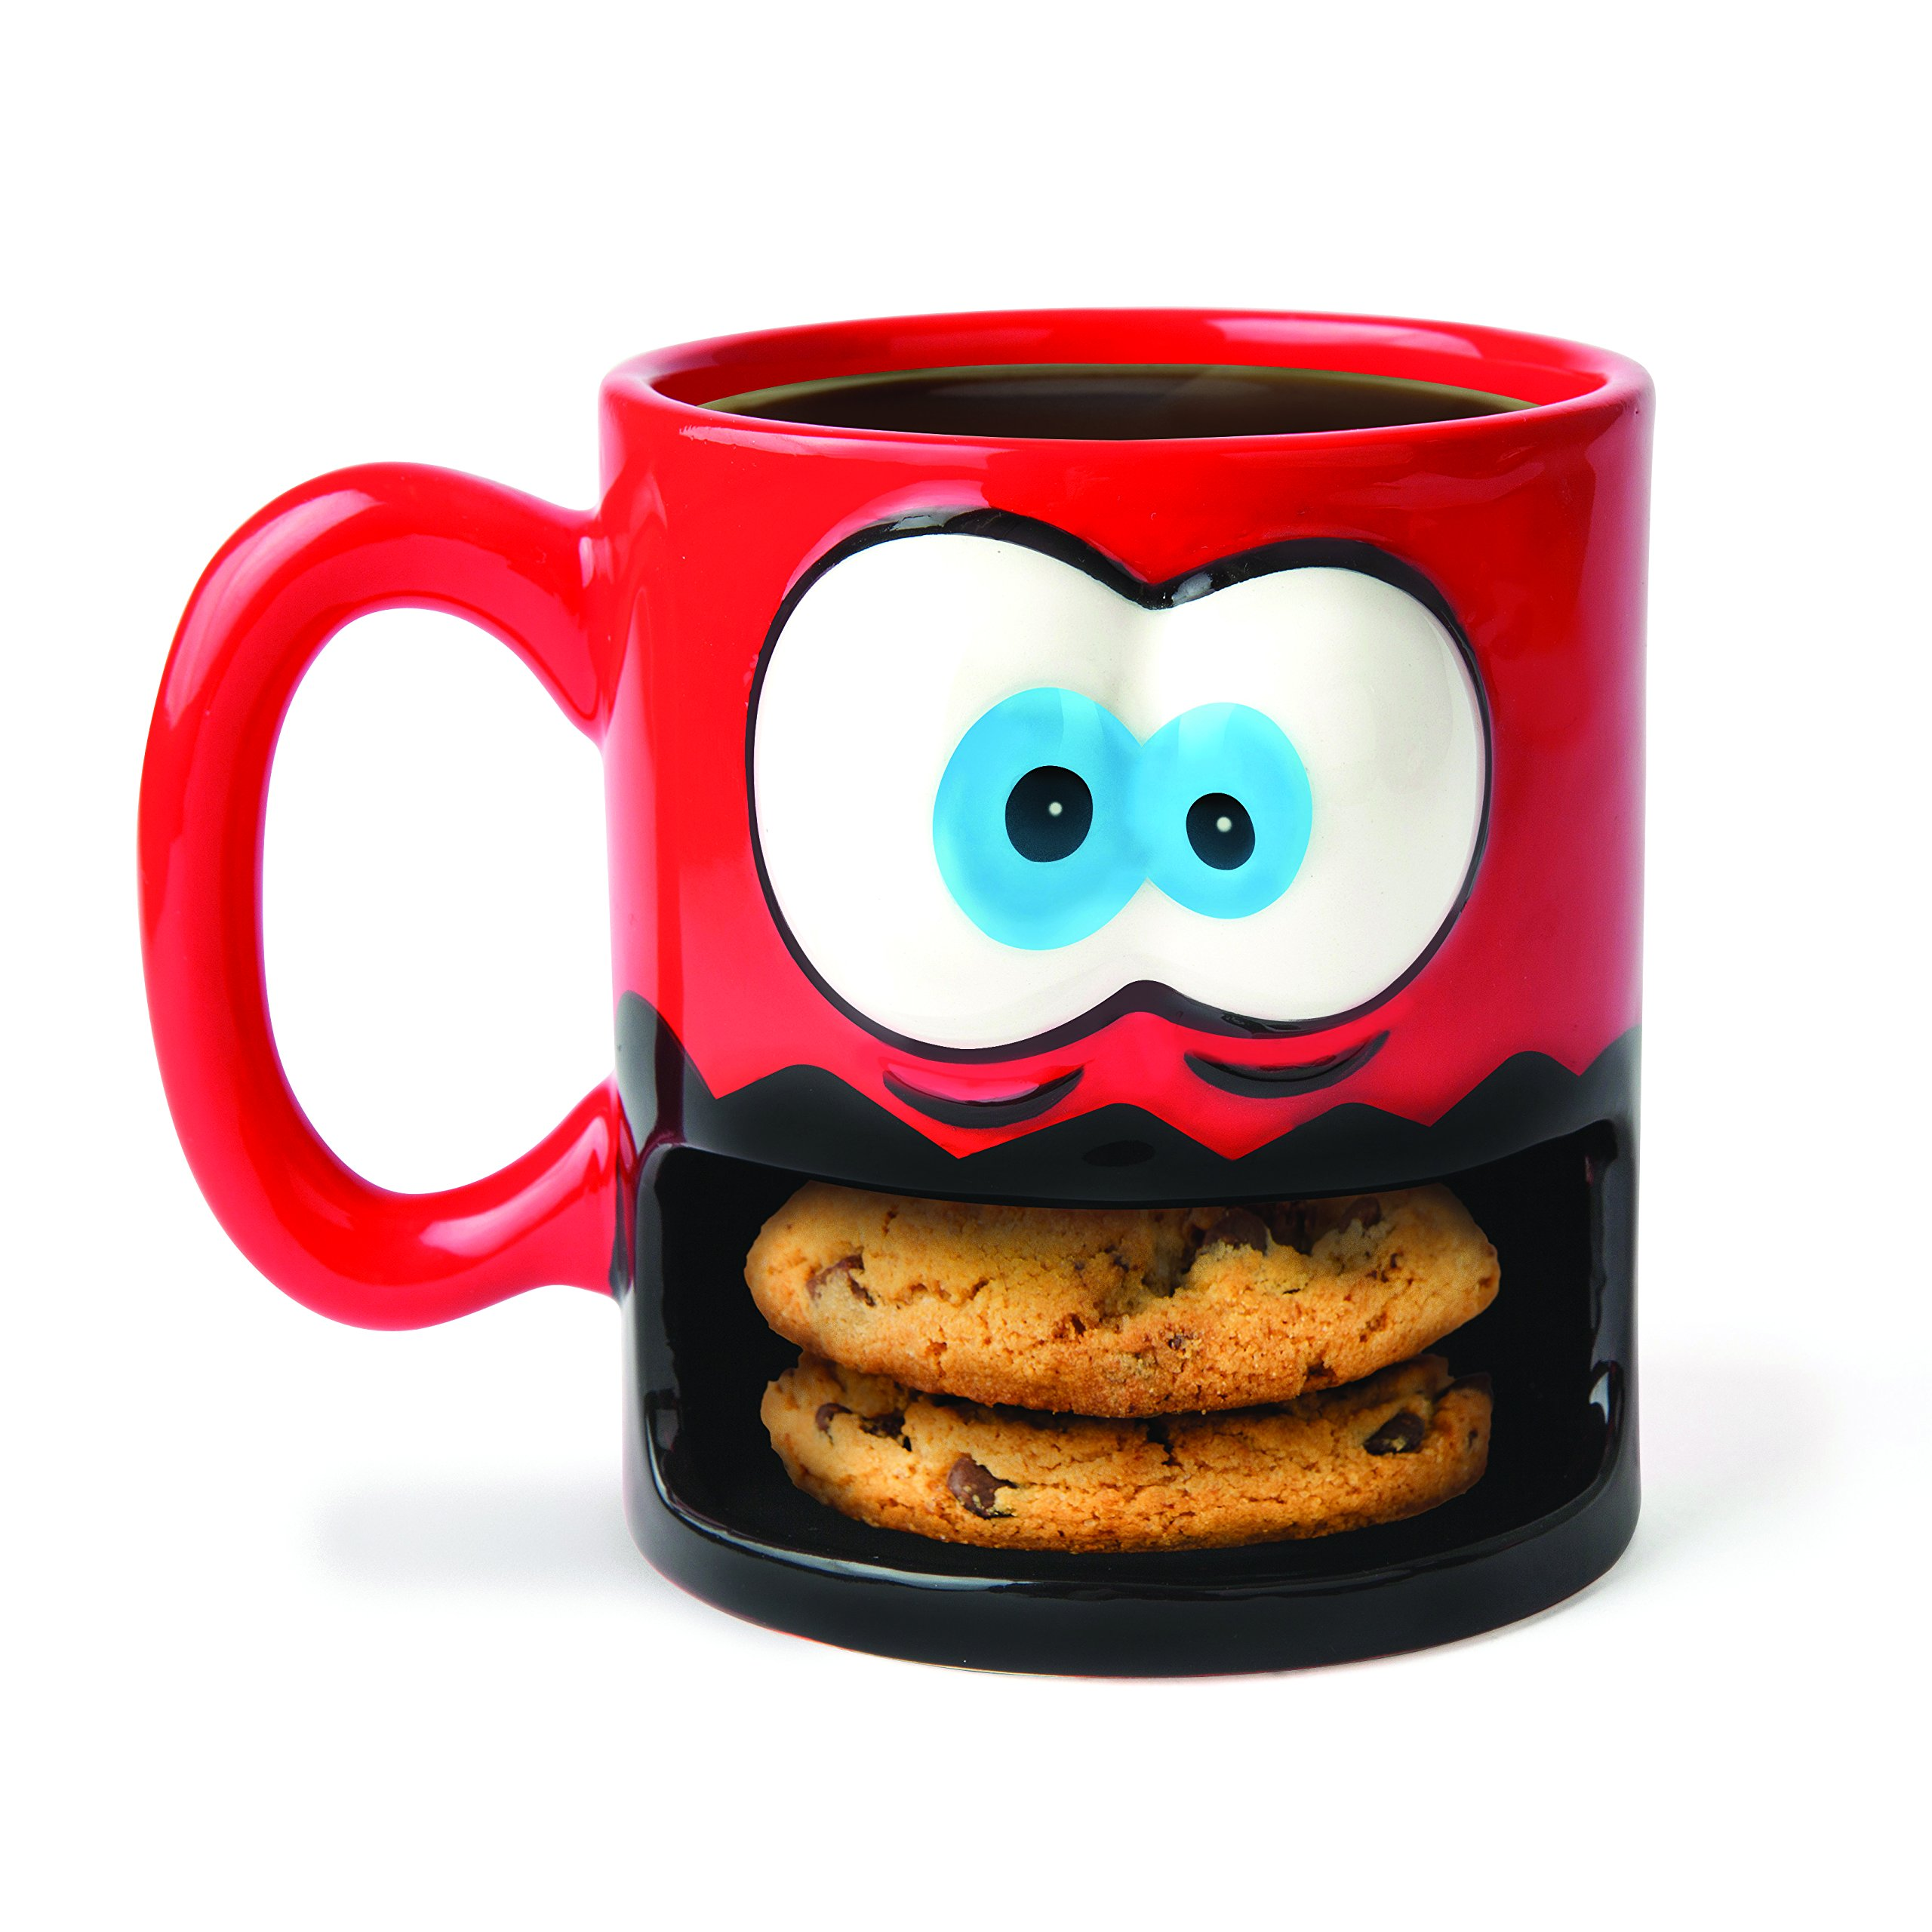 30. Red Cookie Coffee Mug